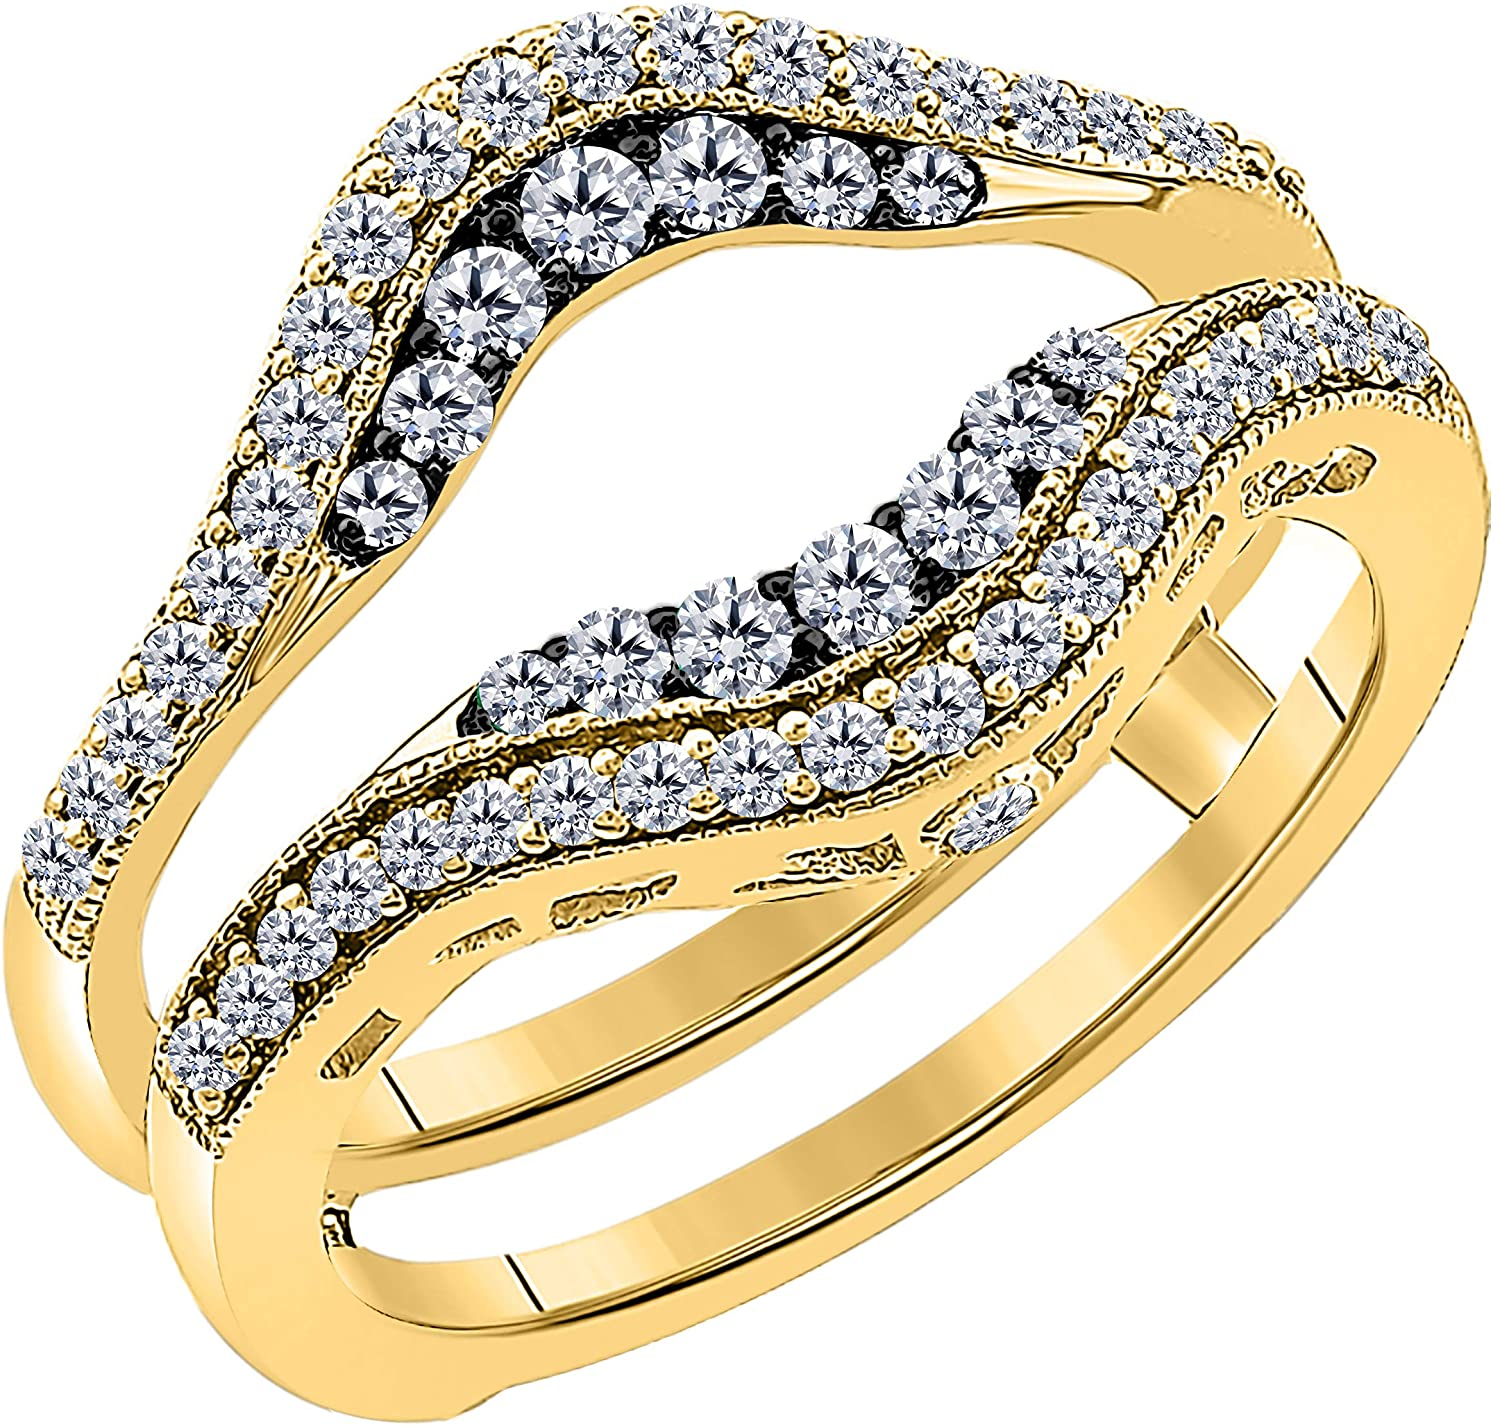 Womens 14k Yellow Gold Plated in 925 Sterling Silver Double Row Pave Set 0.50 ctw Cubic Zirconia Round Wedding Band Solitaire Enhancer Guard Wrap Ring